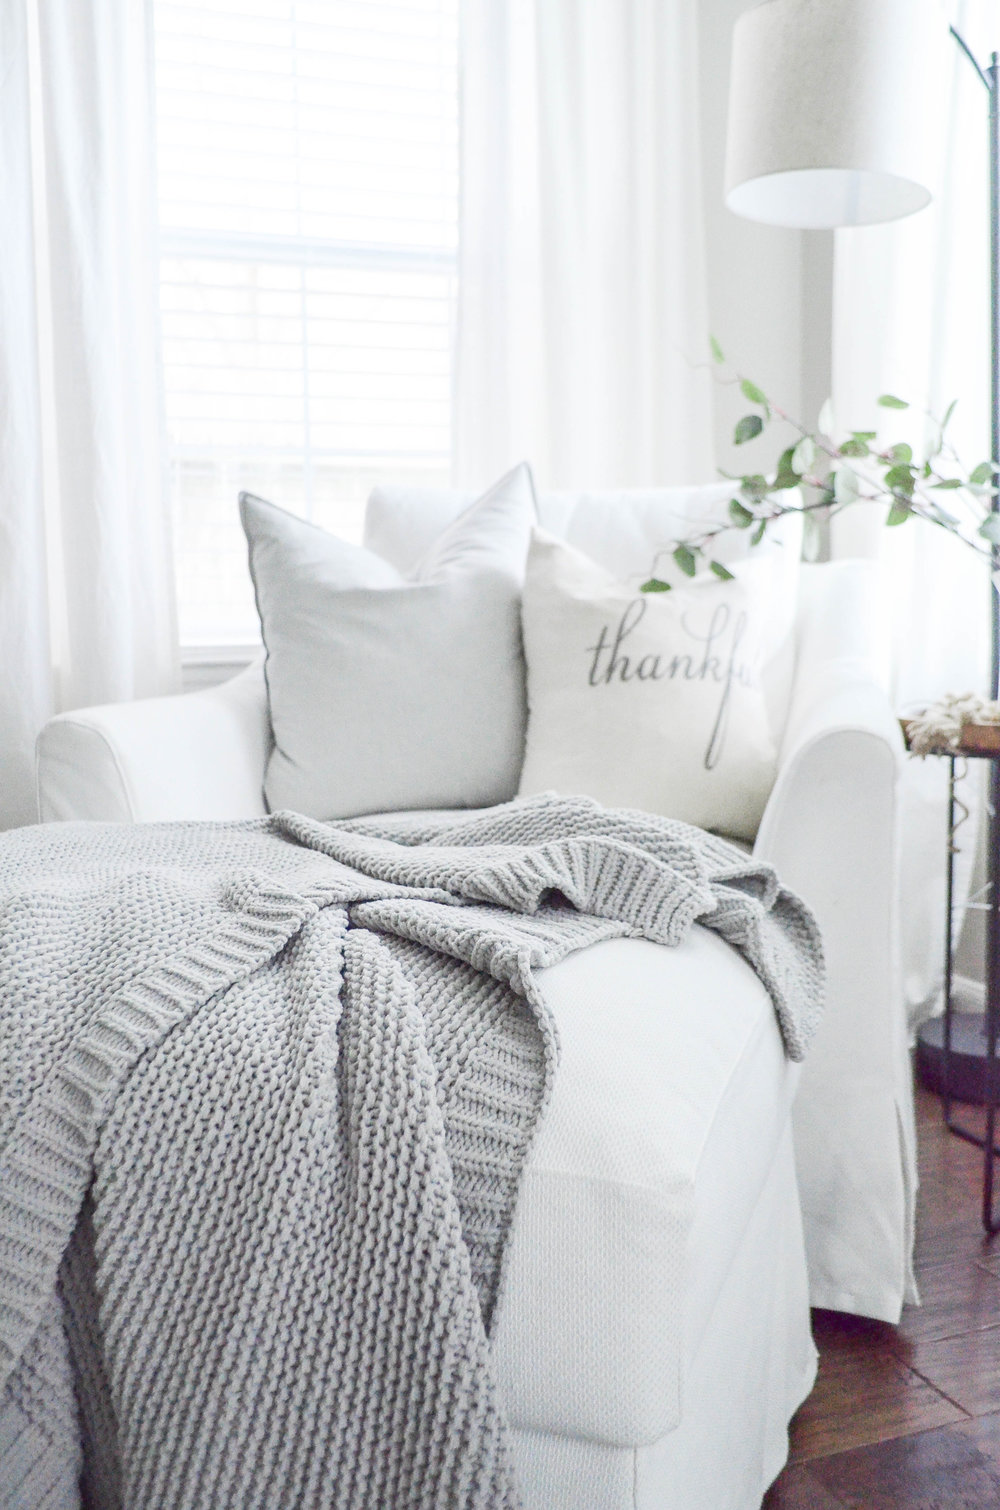 Farmhouse Fall Style Pillows styled by Julie Warnock Interiors.